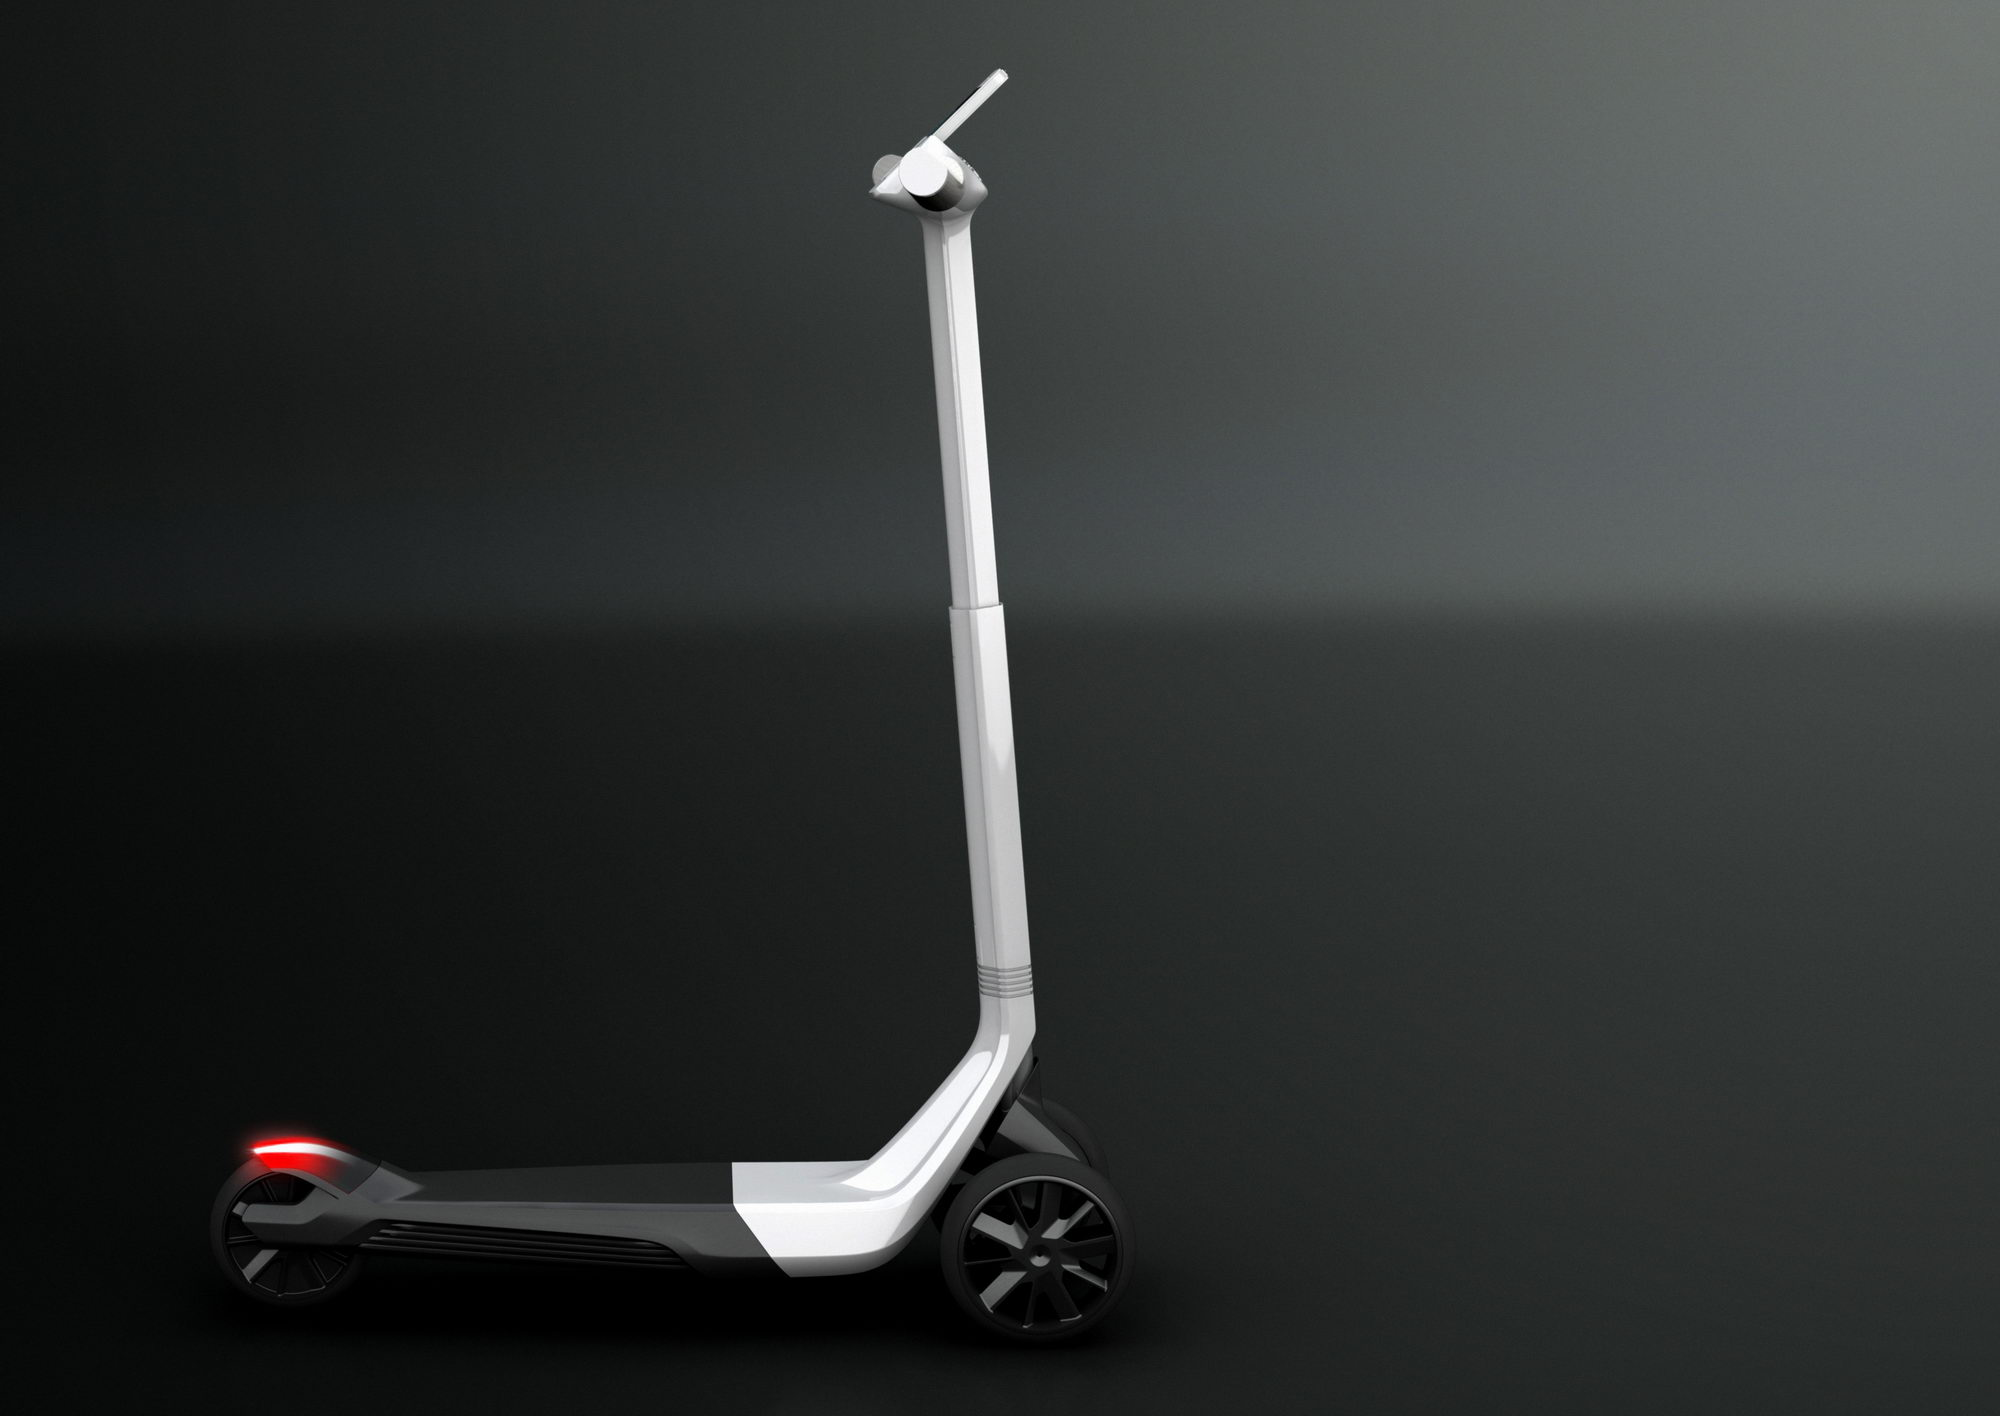 Transportation - PHOTOS - Peugeot Electric Scooter Concept